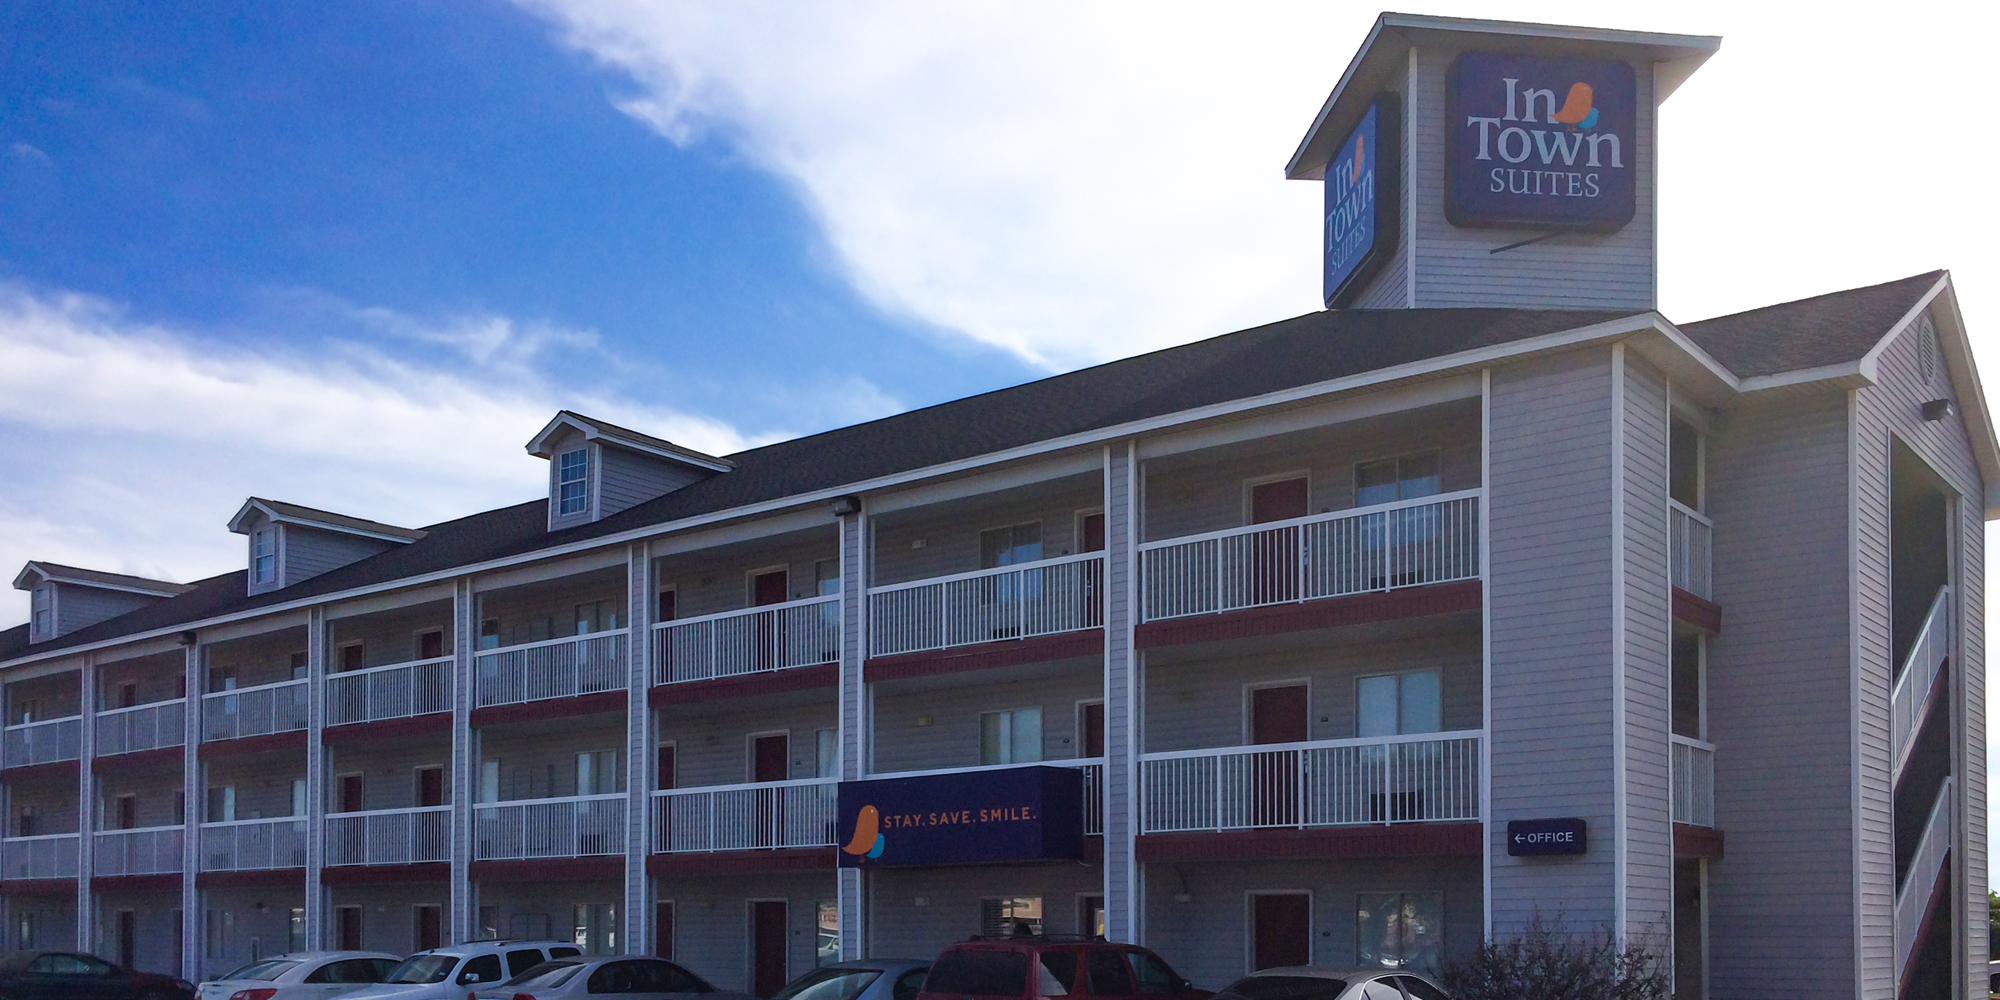 InTown Suites Extended Stay Houston TX - West